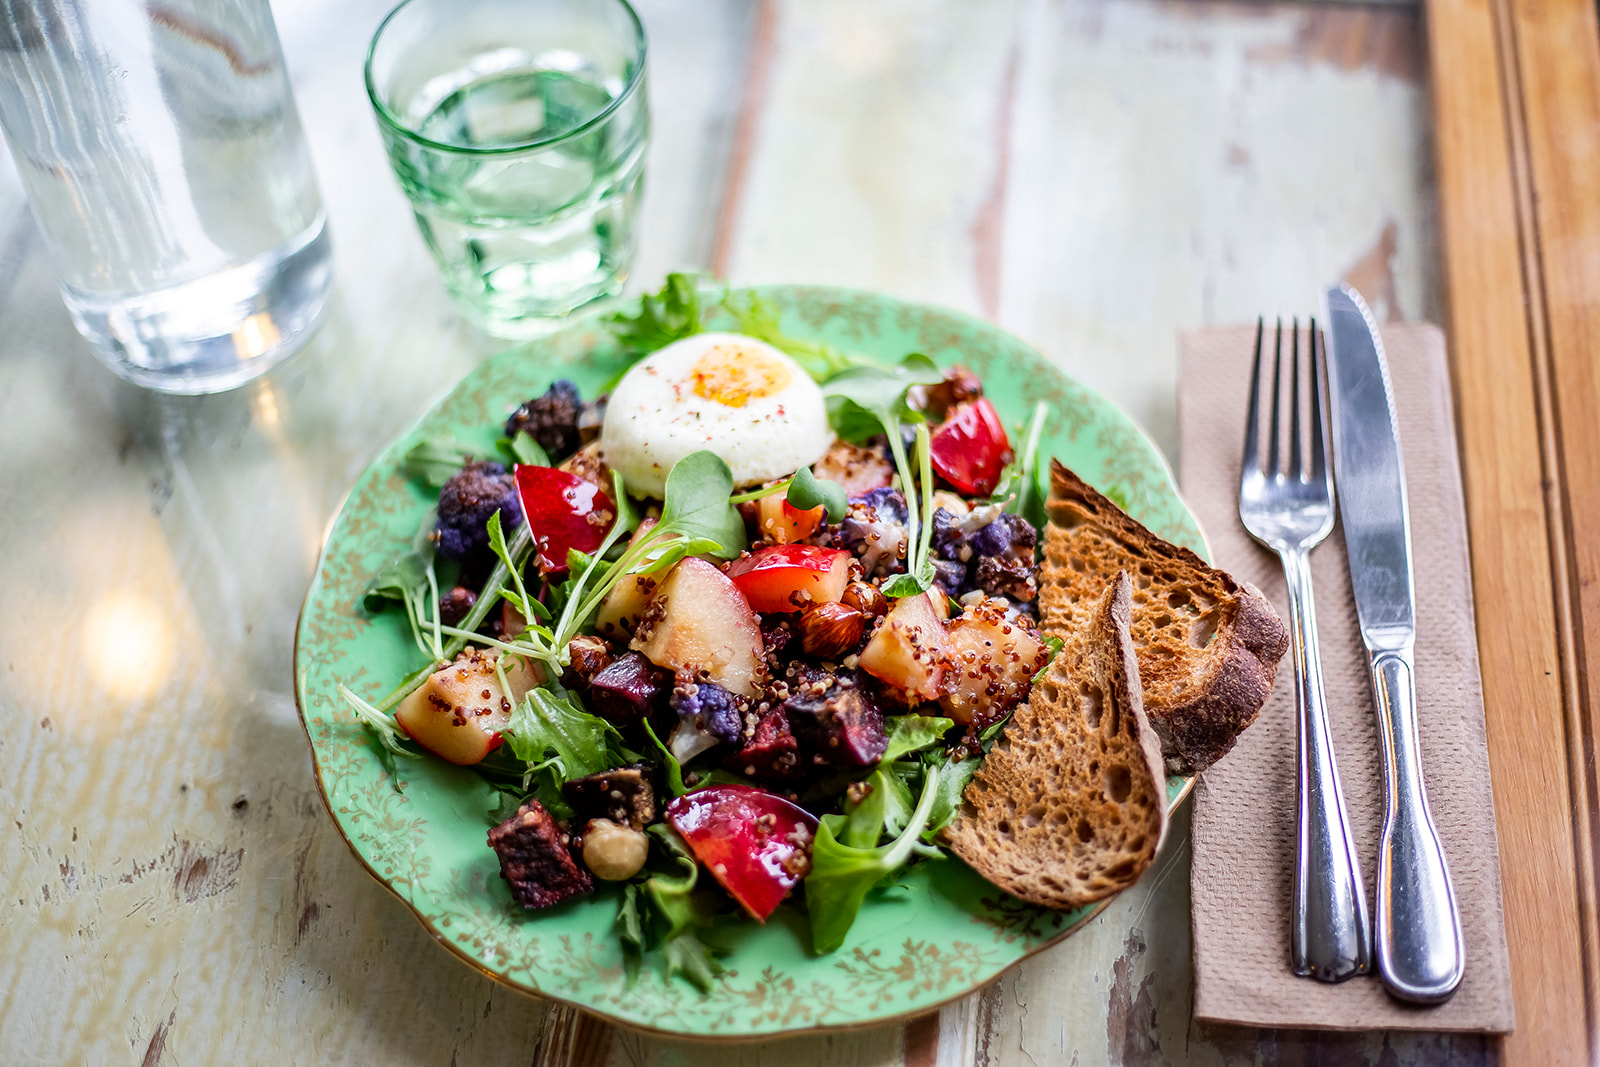 "The Fall Roasted Breakfast Salad with mixed greens with house lemon-orange vinaigrette, maple roasted rosemary hazelnuts, quinoa, beets, heirloom cauliflower and crispy kale with a poached egg. Cafe Mia features seasonal, locally-sourced and ethical cuisine - every dish is prepared in house by Mia herself. Cafe Mia is tucked away near the West Seattle Junction on SW Oregon Street. The perfect spot for brunch after hitting the farmers market on Sunday! Find them on Instagram{&nbsp;}<a  href=""https://www.instagram.com/cafe.mia/?hl=en"" target=""_blank"" title=""https://www.instagram.com/cafe.mia/?hl=en"">@cafe.mia</a>. (Image:{&nbsp;}Samantha Witt / Seattle Refined)"